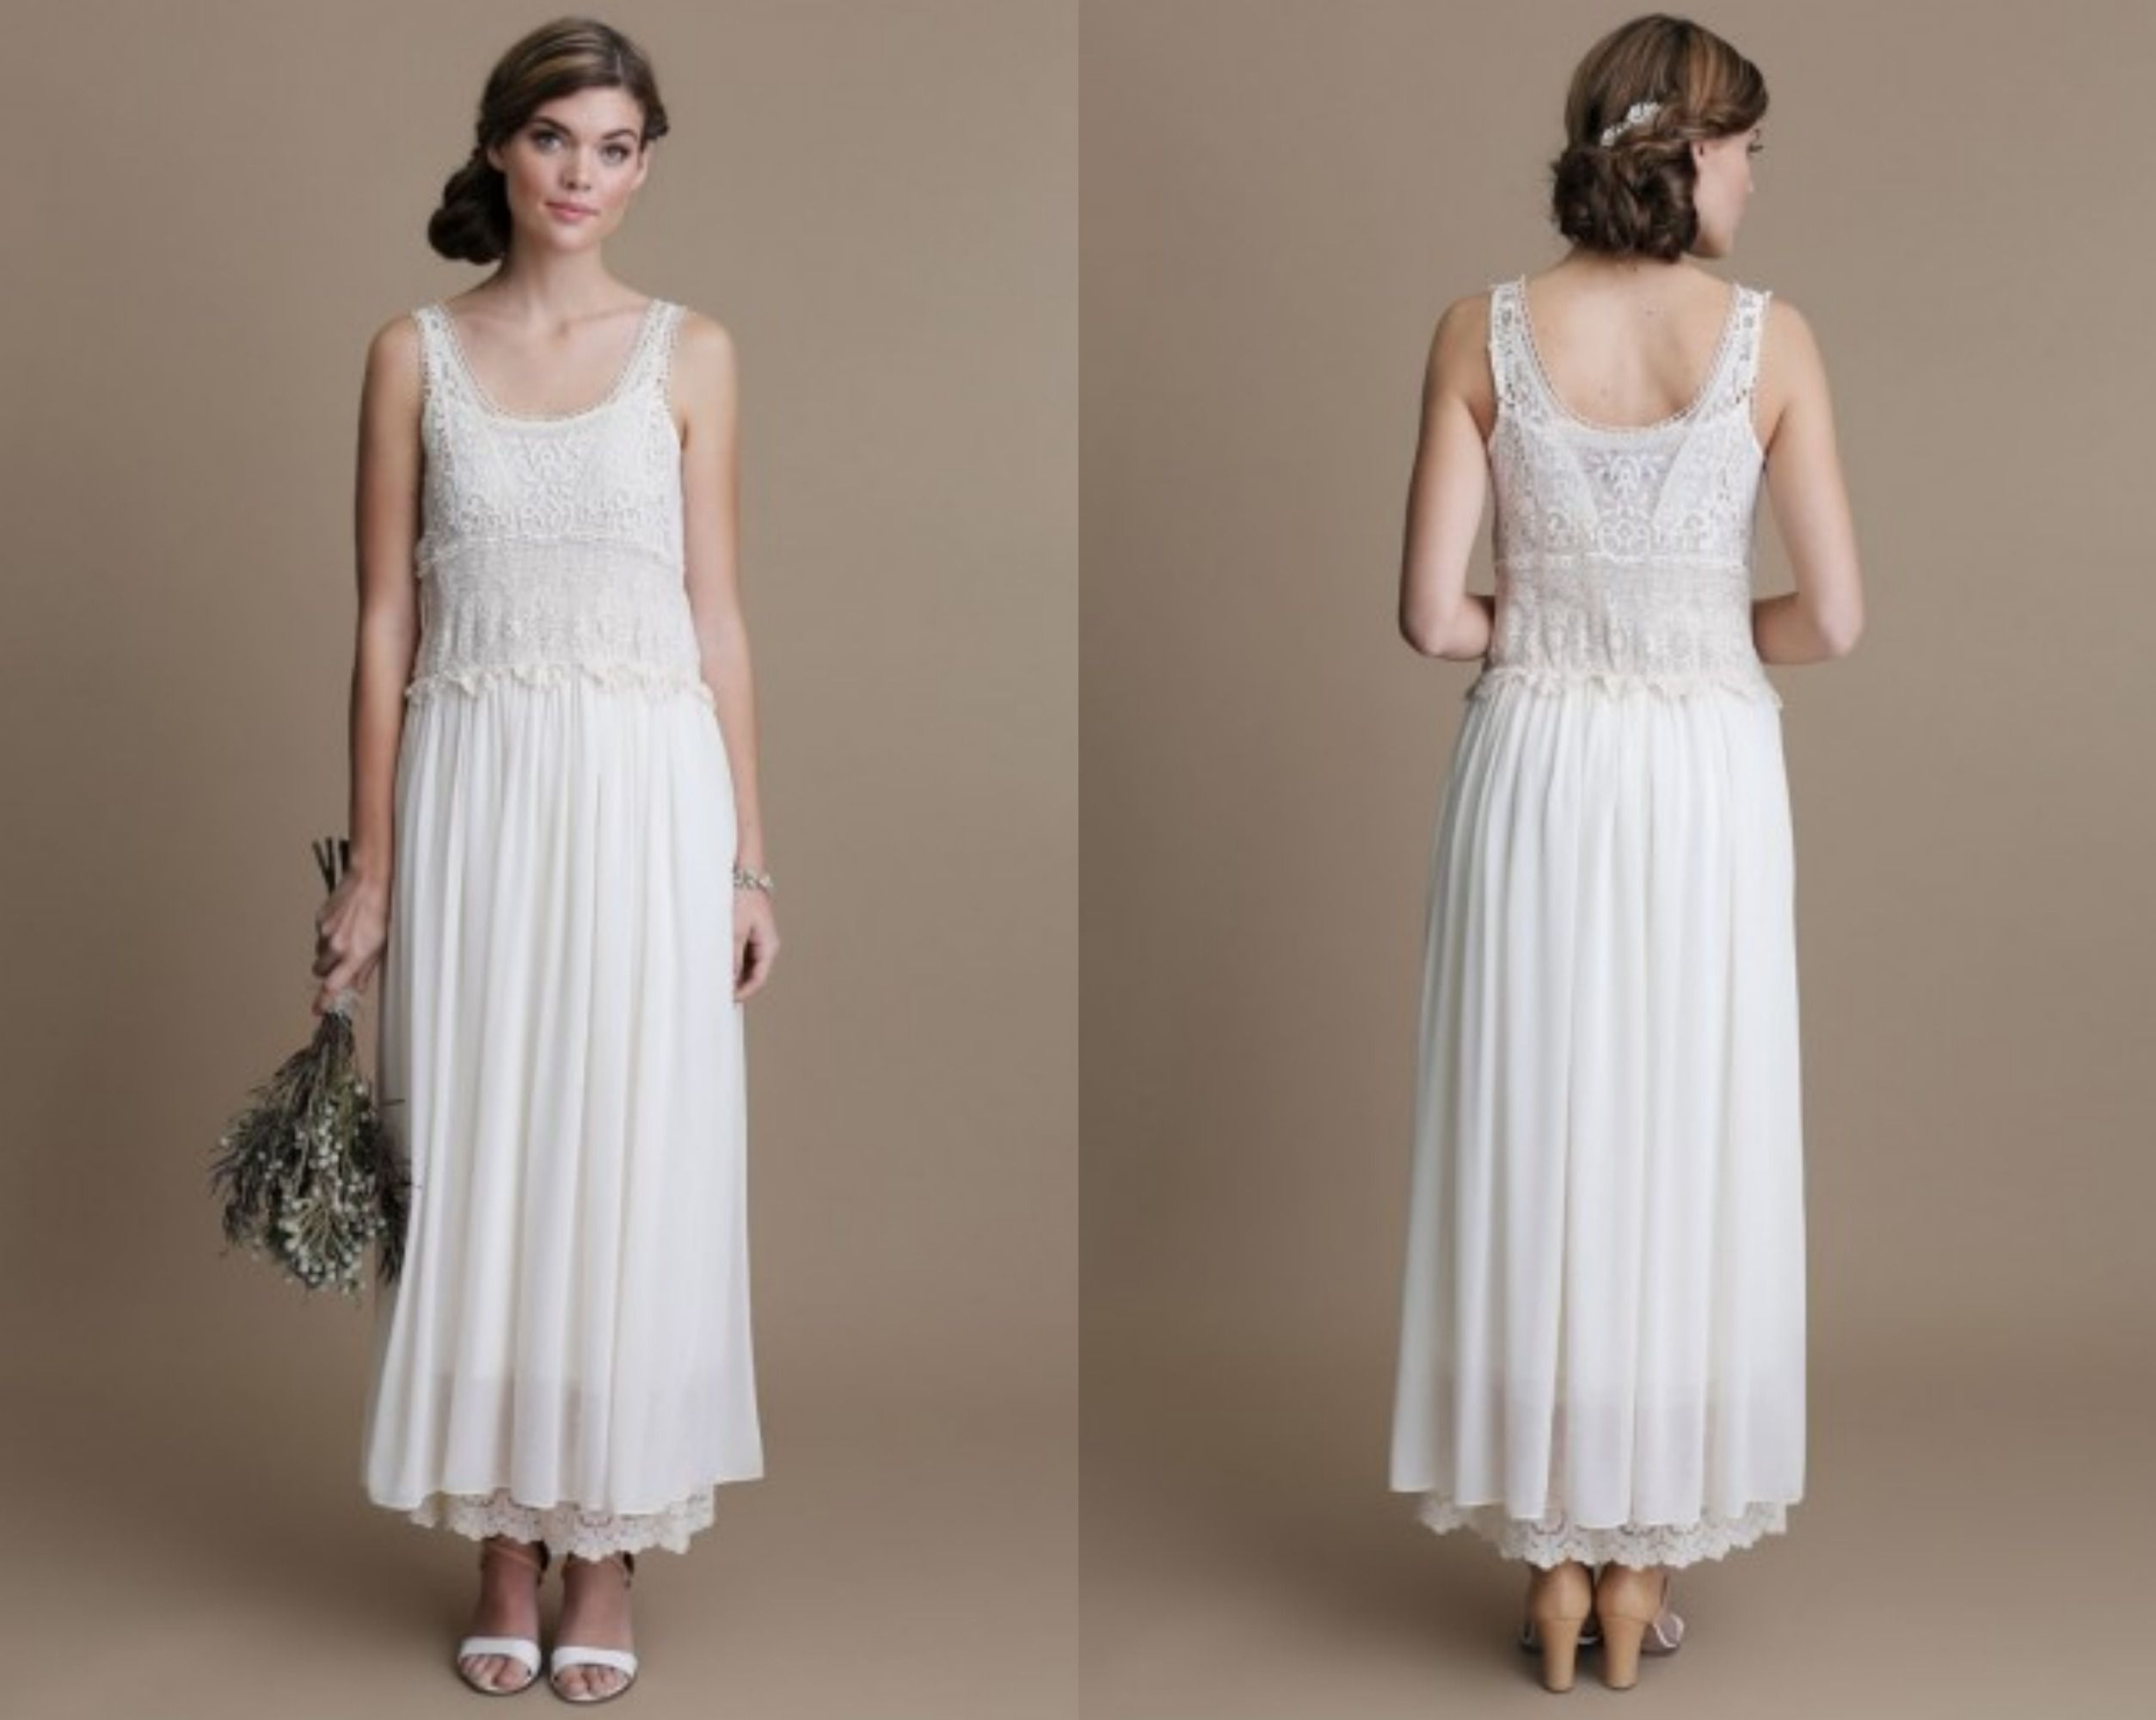 Boho Style Wedding Gowns - Rustic Wedding Chic